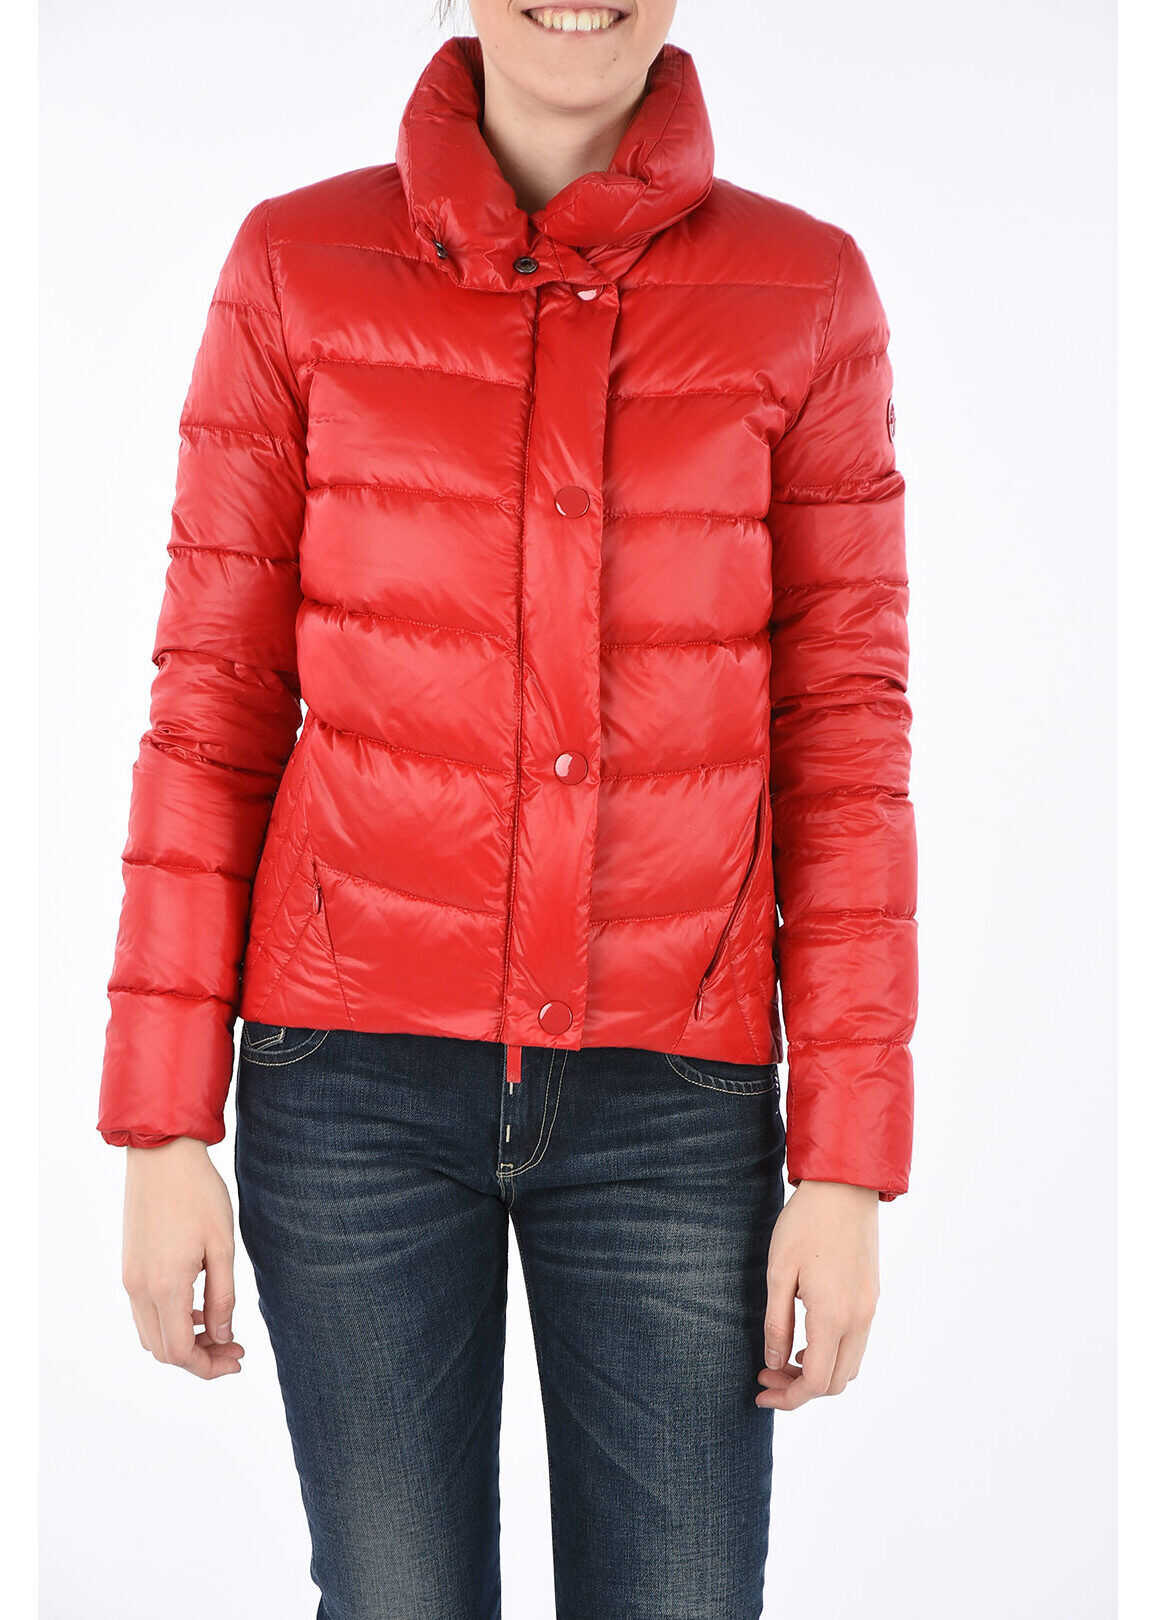 Armani ARMANI JEANS Long Sleeve Down Padded Jacket RED